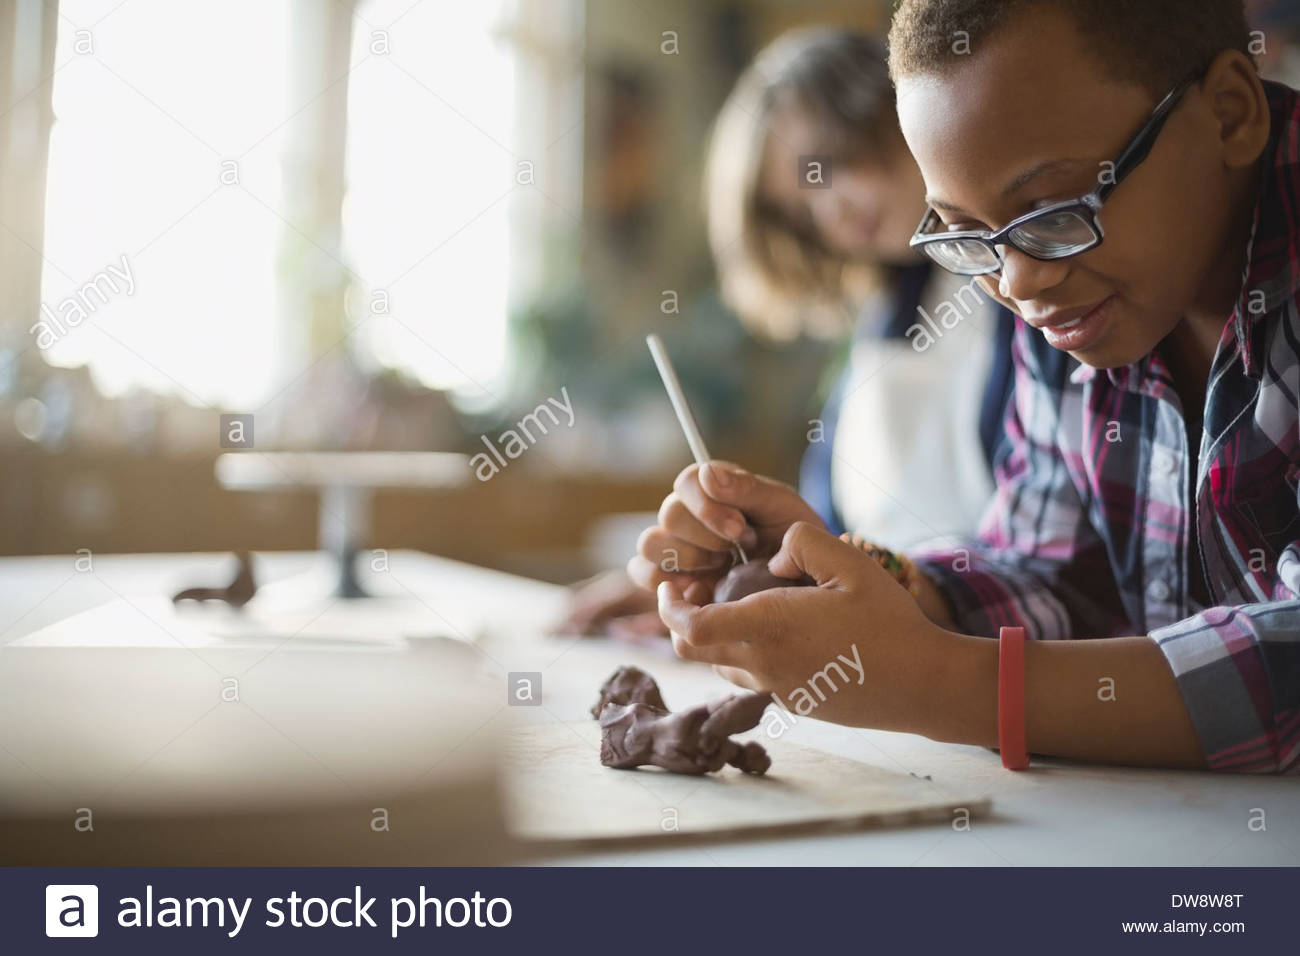 Boy creating clay figurines in art class - Stock Image